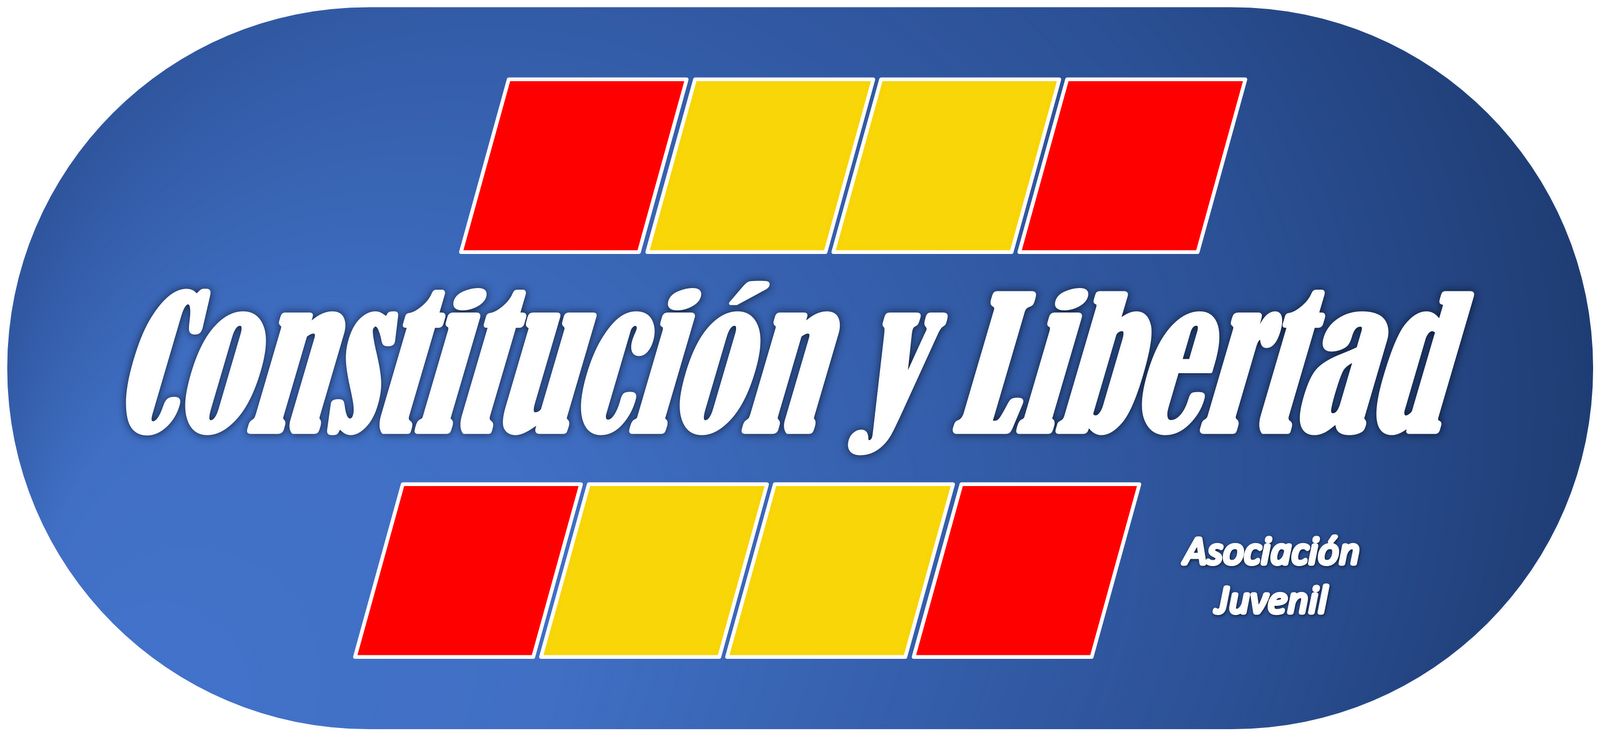 Blog de Constitución y Libertad